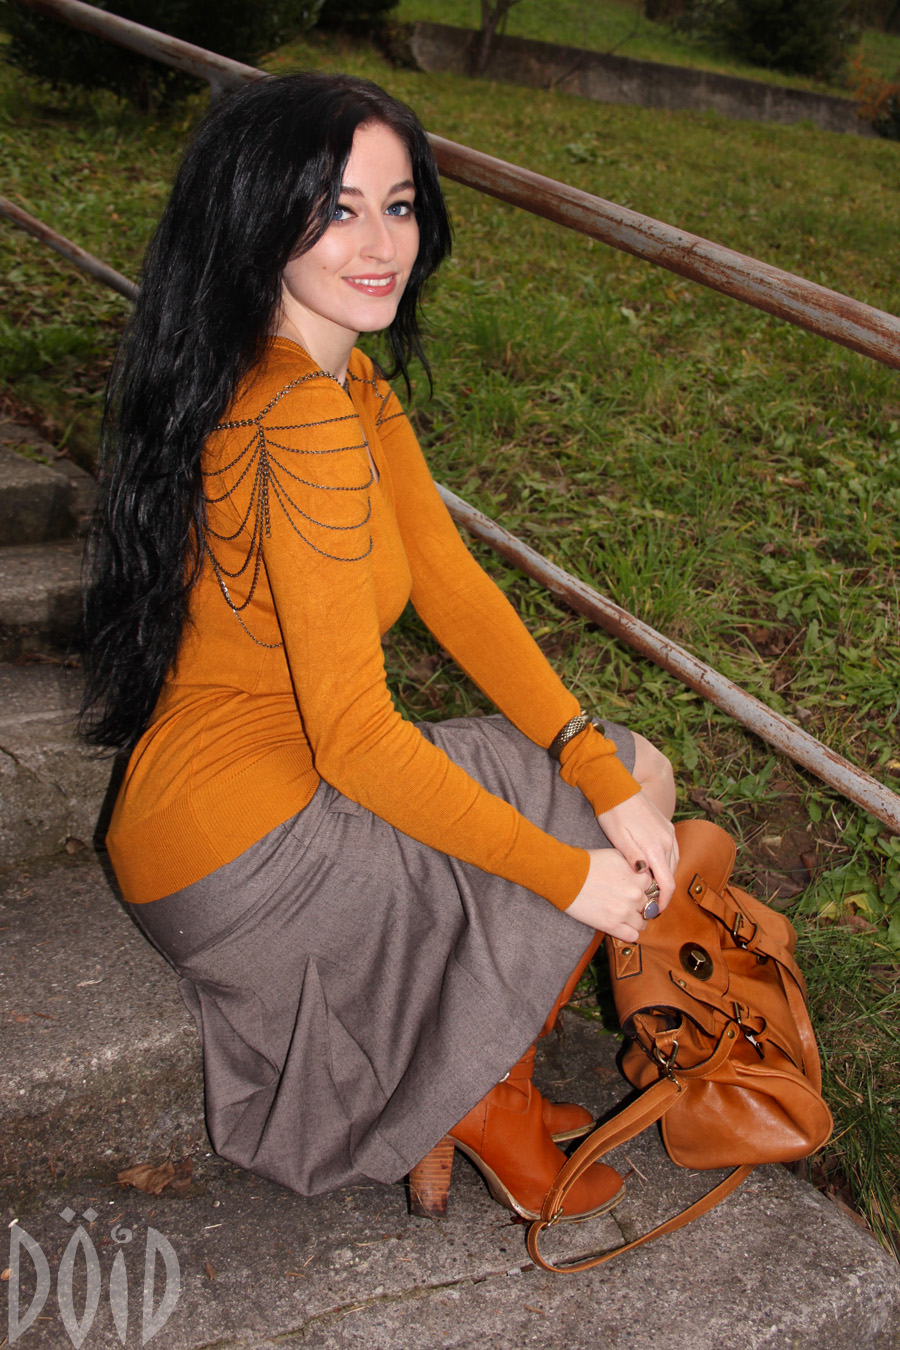 Pantyhose boots skirt girl AWESOME